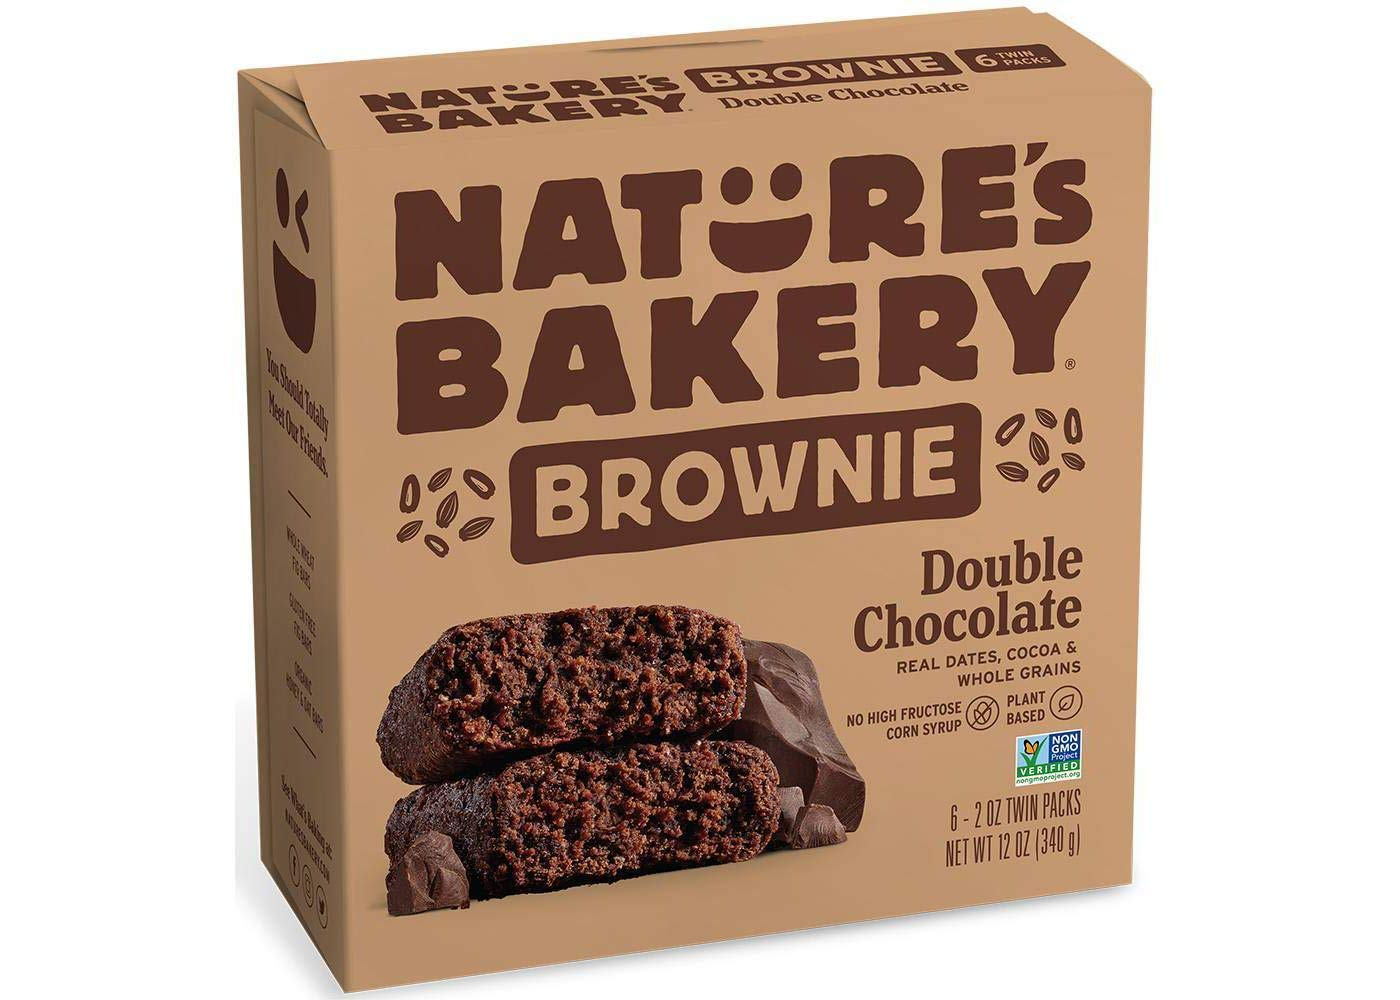 Nature's Bakery Whole Wheat Soft-Baked Bar Brownie Bar with Real Dates/Grains/Cocoa - 6 ct. (12 oz.) by Nature's Bakery FB